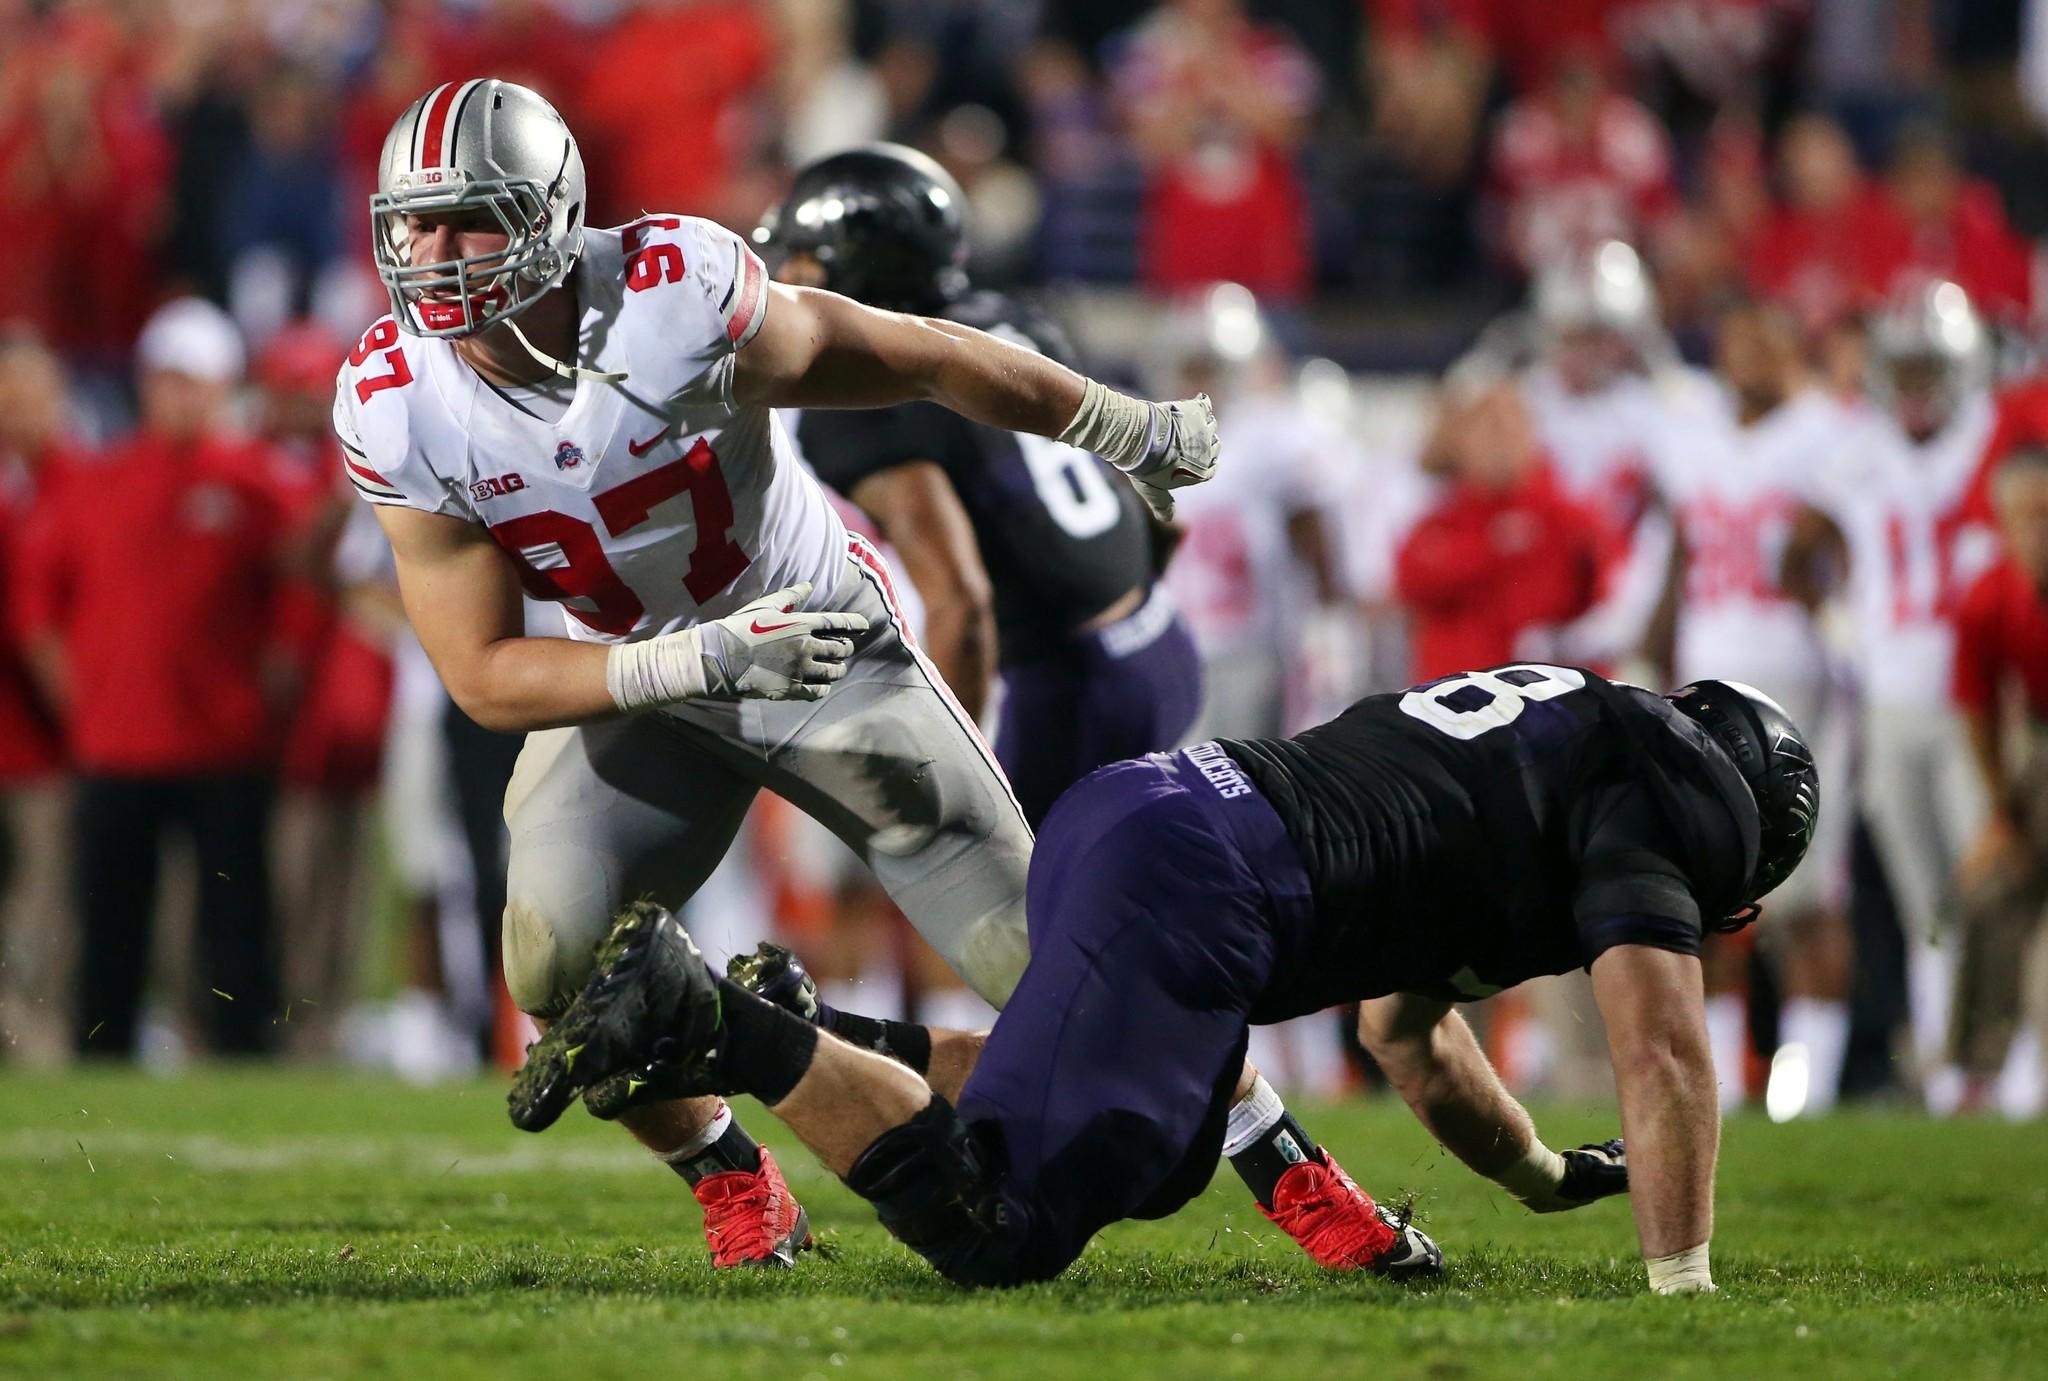 Ohio State defensive lineman Joey Bosa (97) gets past Northwestern's Paul Jorgensen during the fourth quarter at Ryan Field.